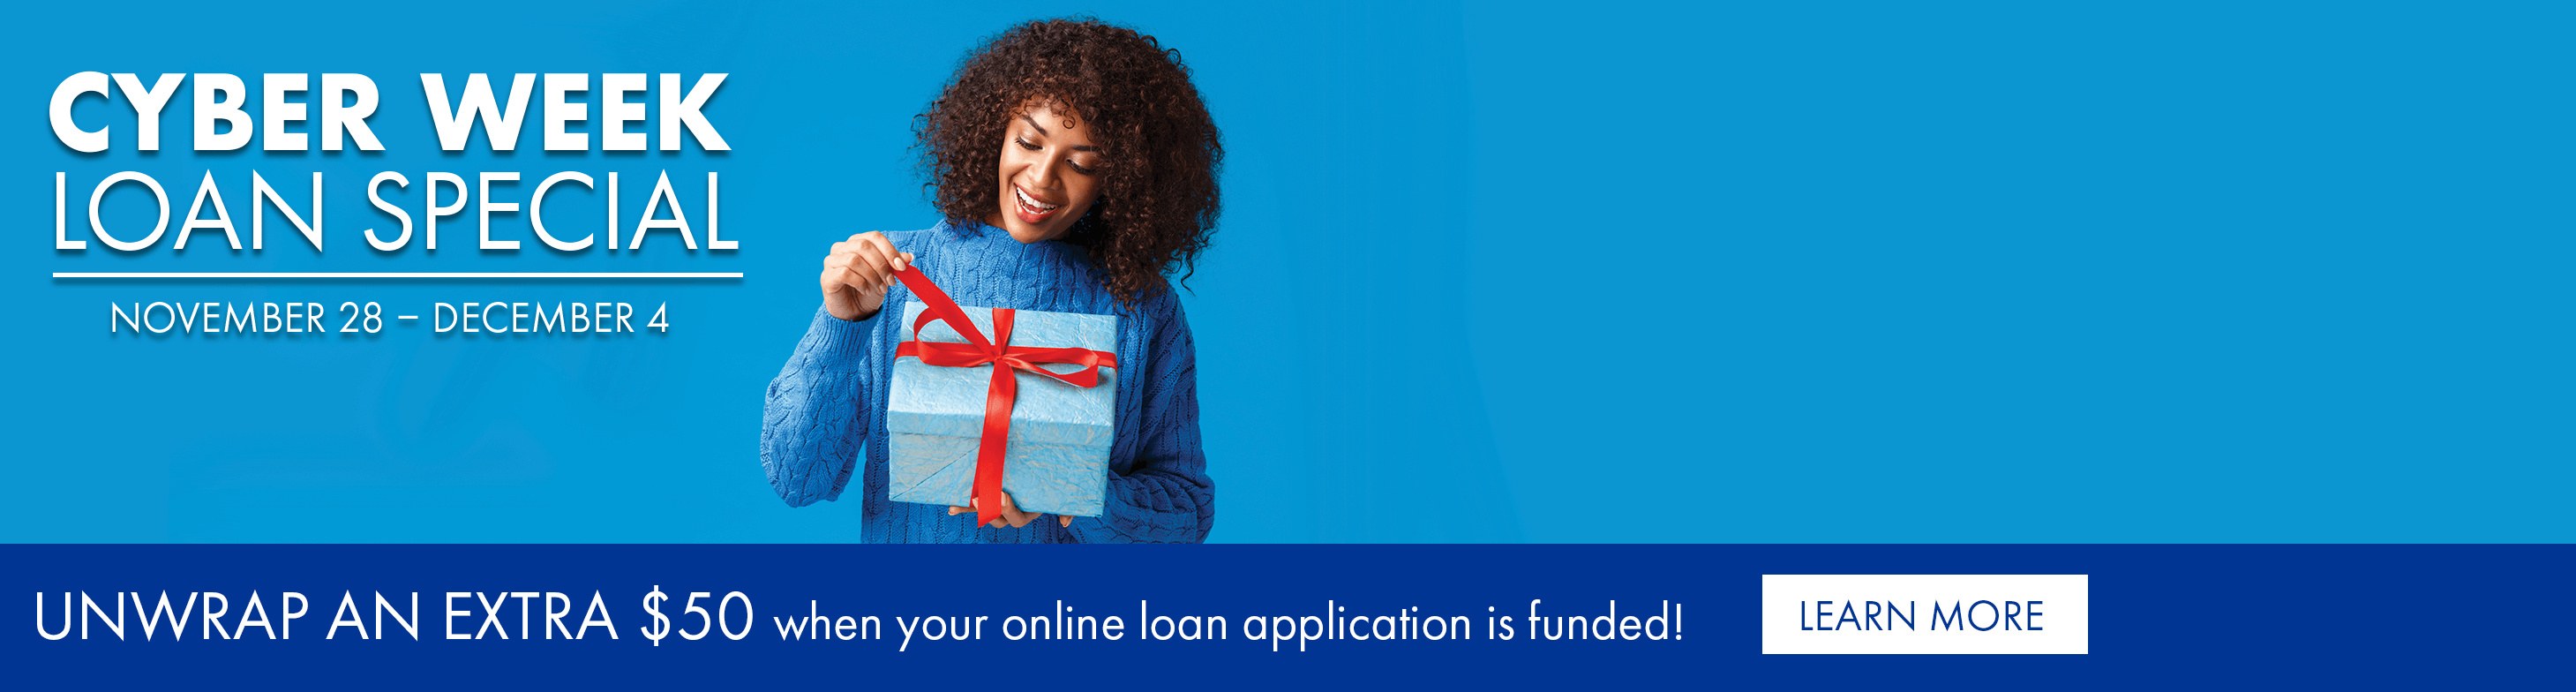 Cyber Week loan special November 28 - December 4. Unwrap an extra $50 when your online loan application is funded!